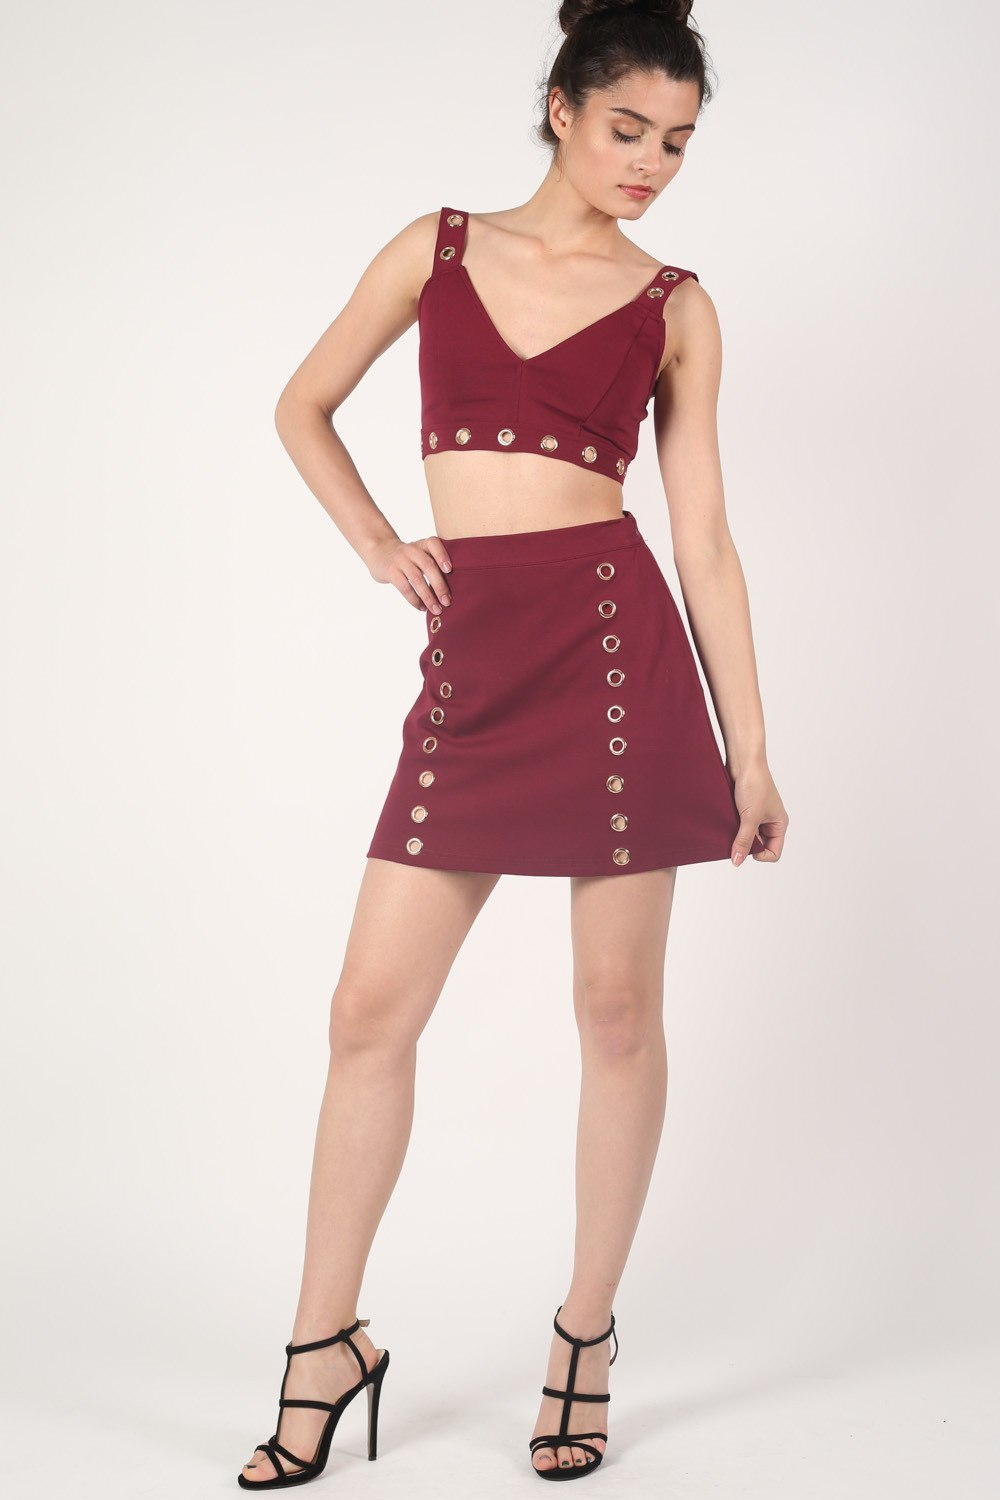 A-Line Eyelet Detail Mini Skirt in Wine Red MODEL FRONT